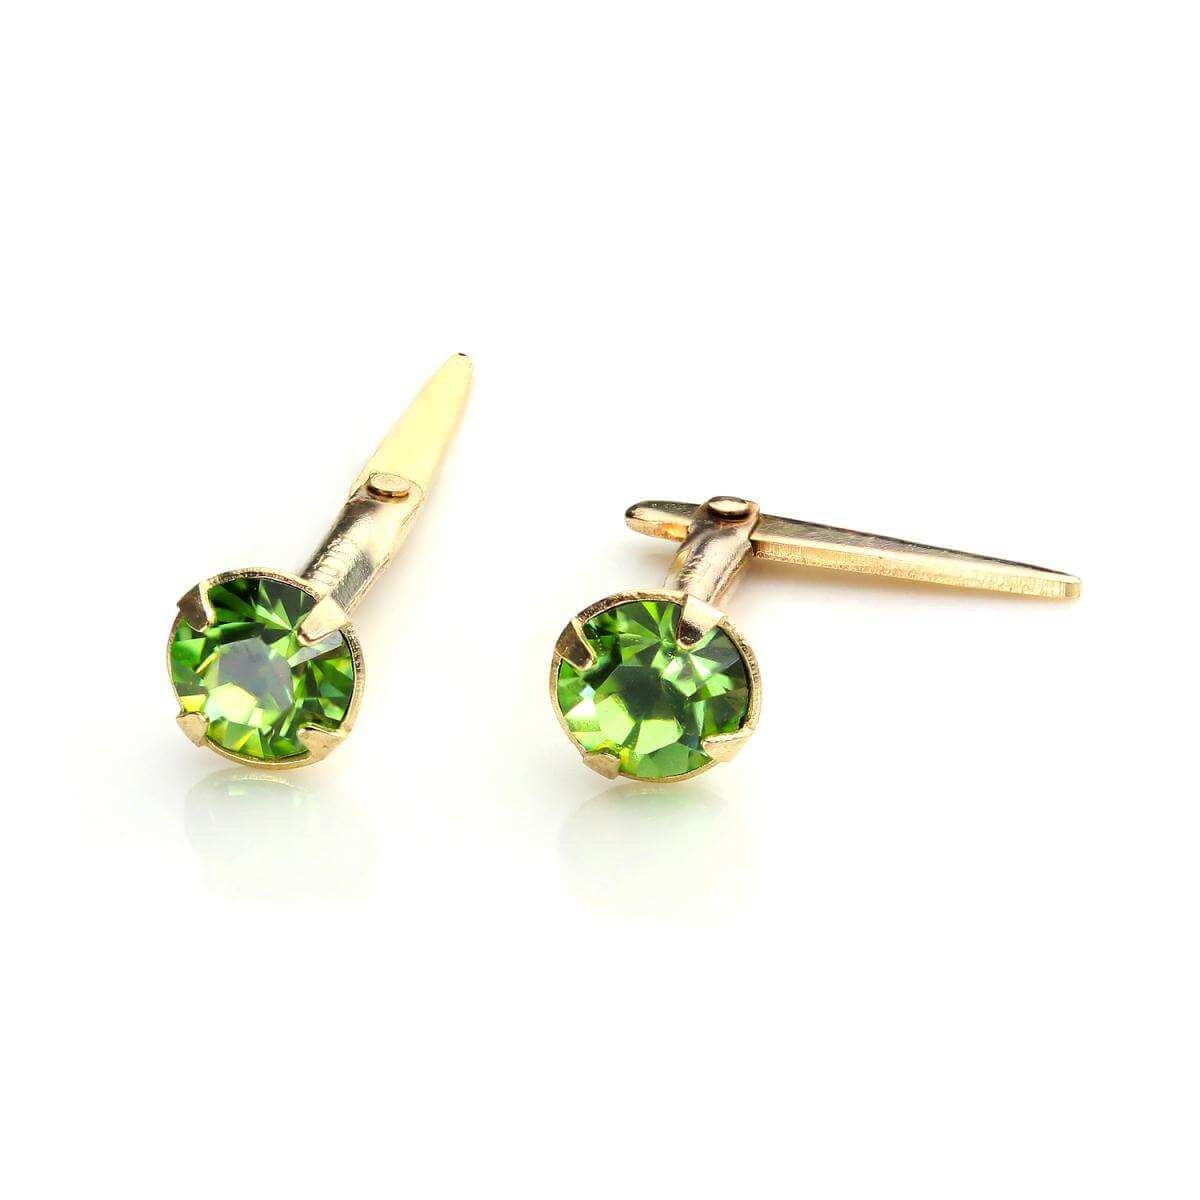 9ct Gold Andralok Stud Earrings with 3mm Peridot Crystal